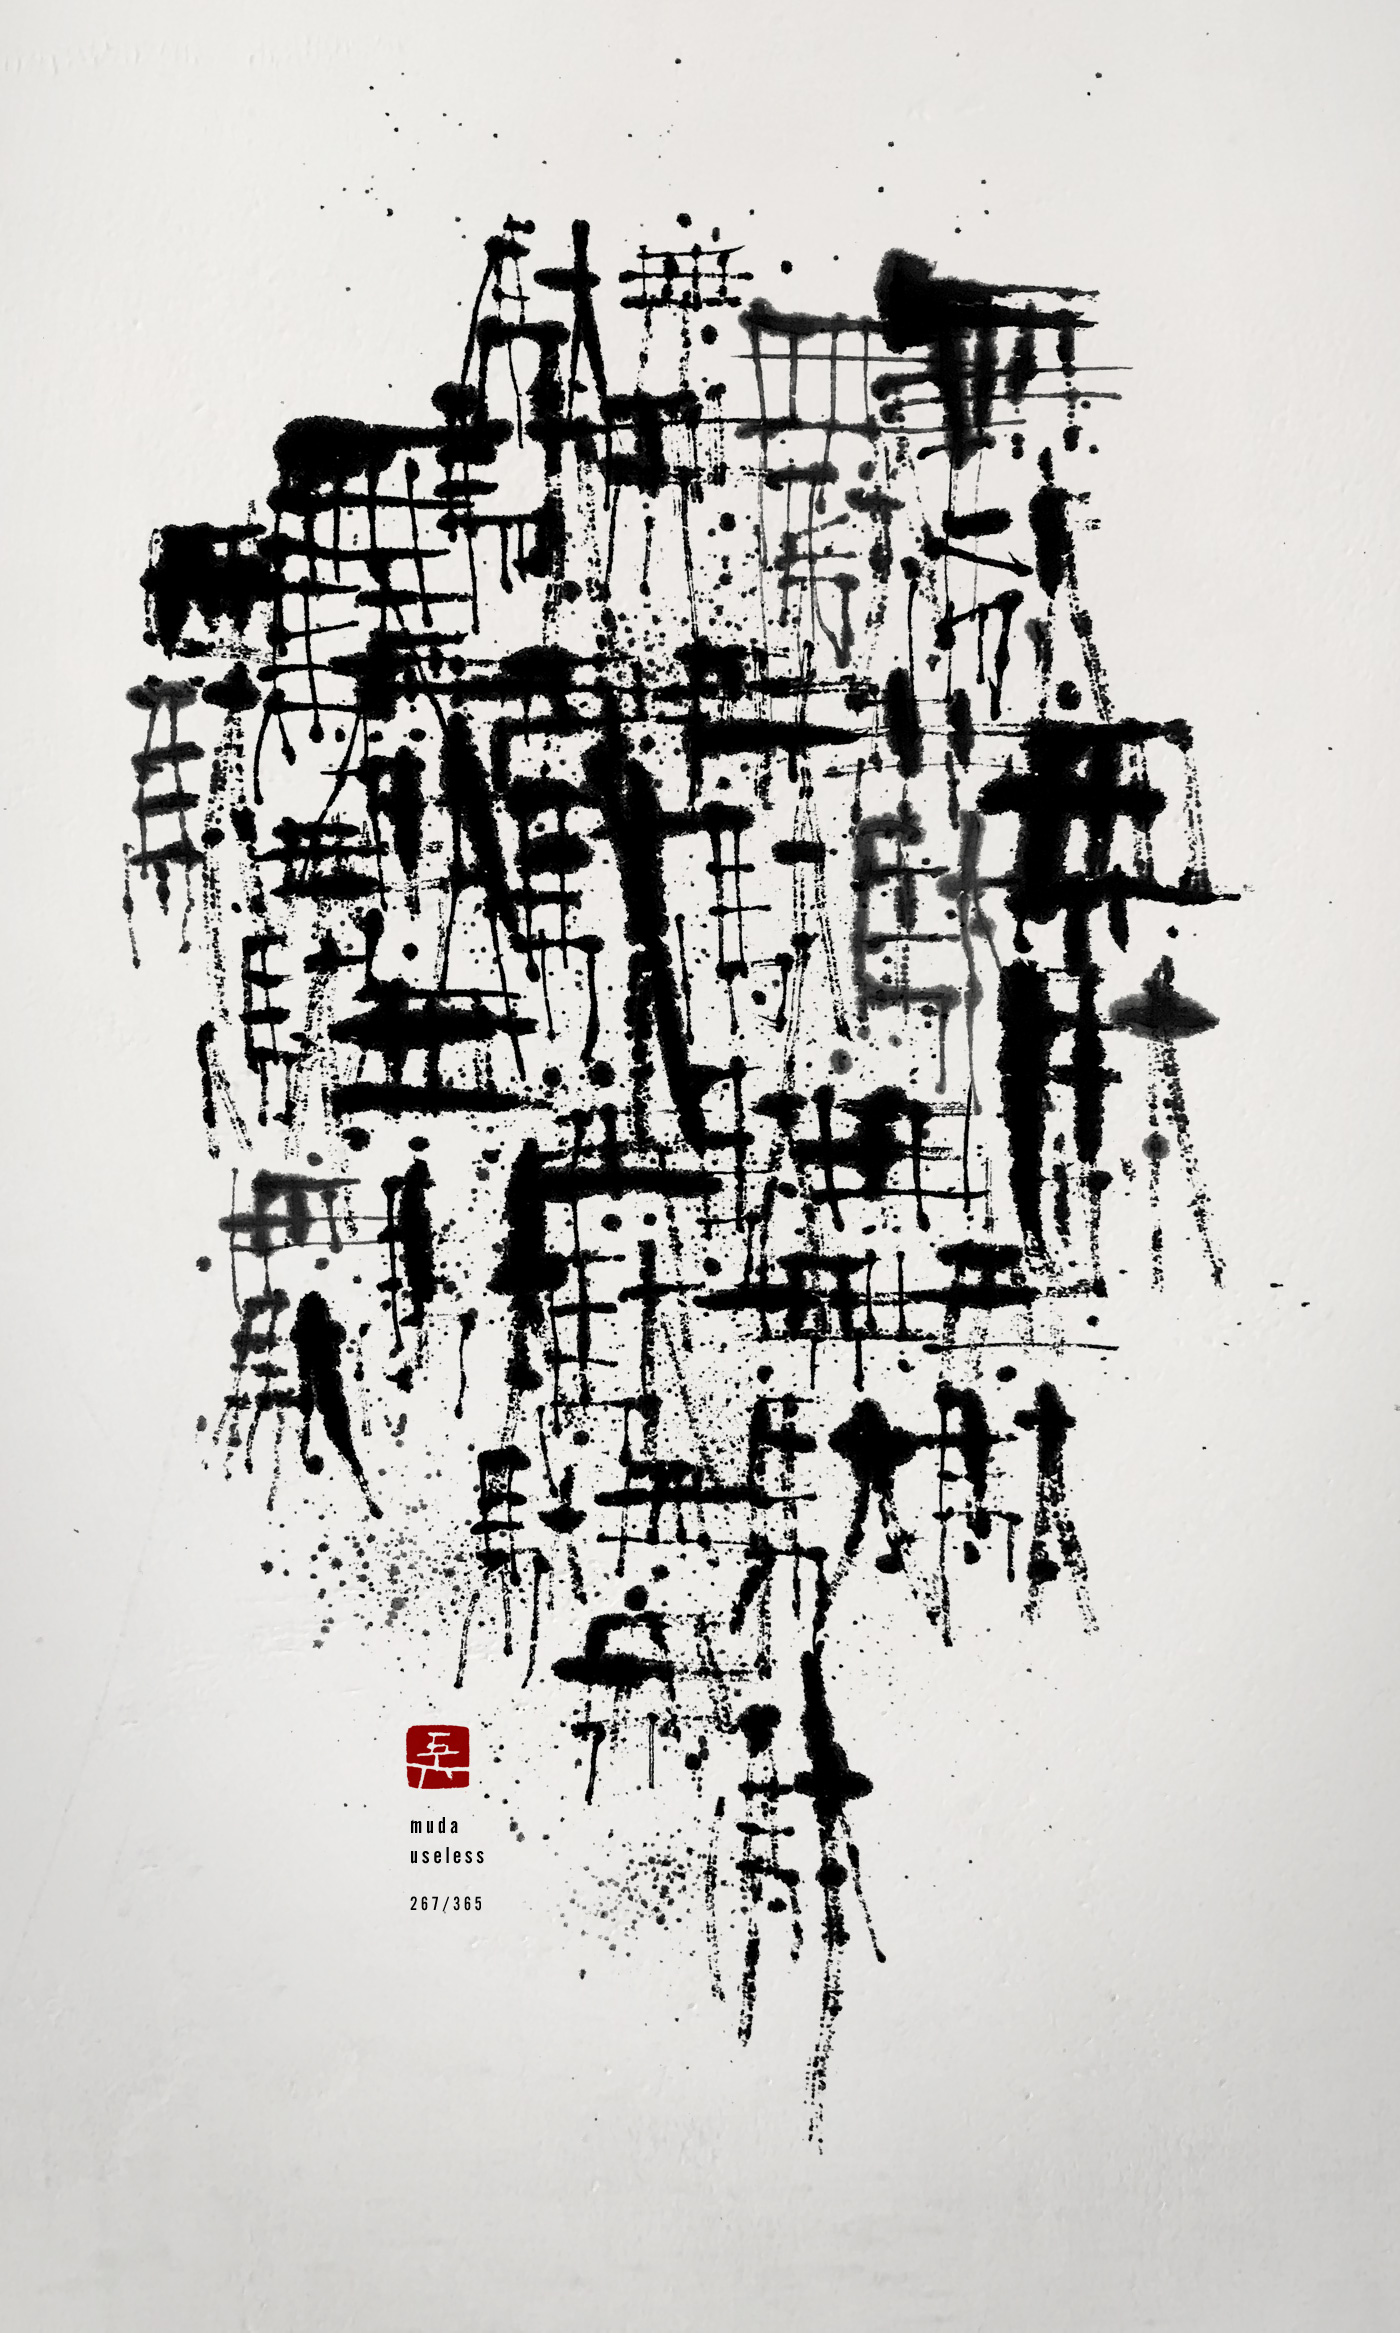 無駄 useless 書道作品 japaneseart japanese calligraphy 書家 田川悟郎 Goroh Tagawa